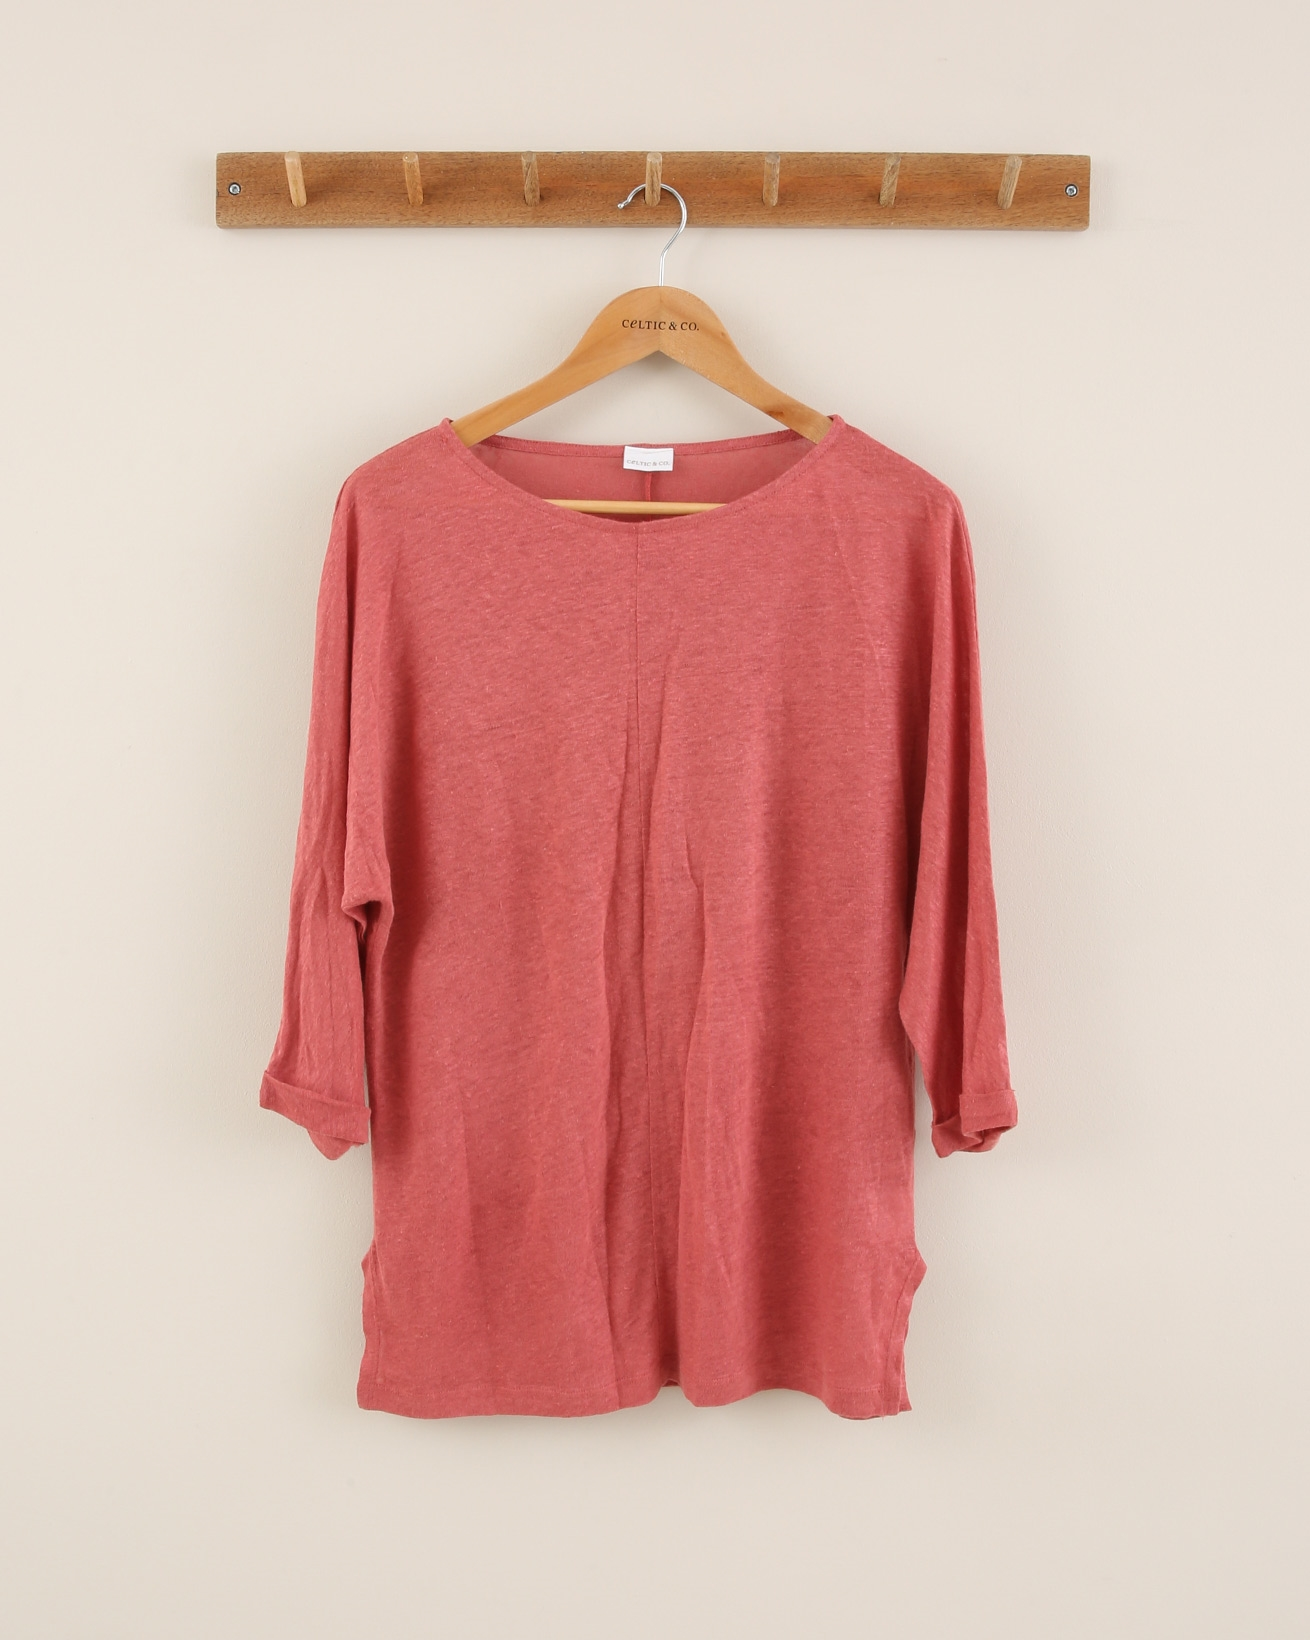 1848-linen-dolman-antique-rose.jpg